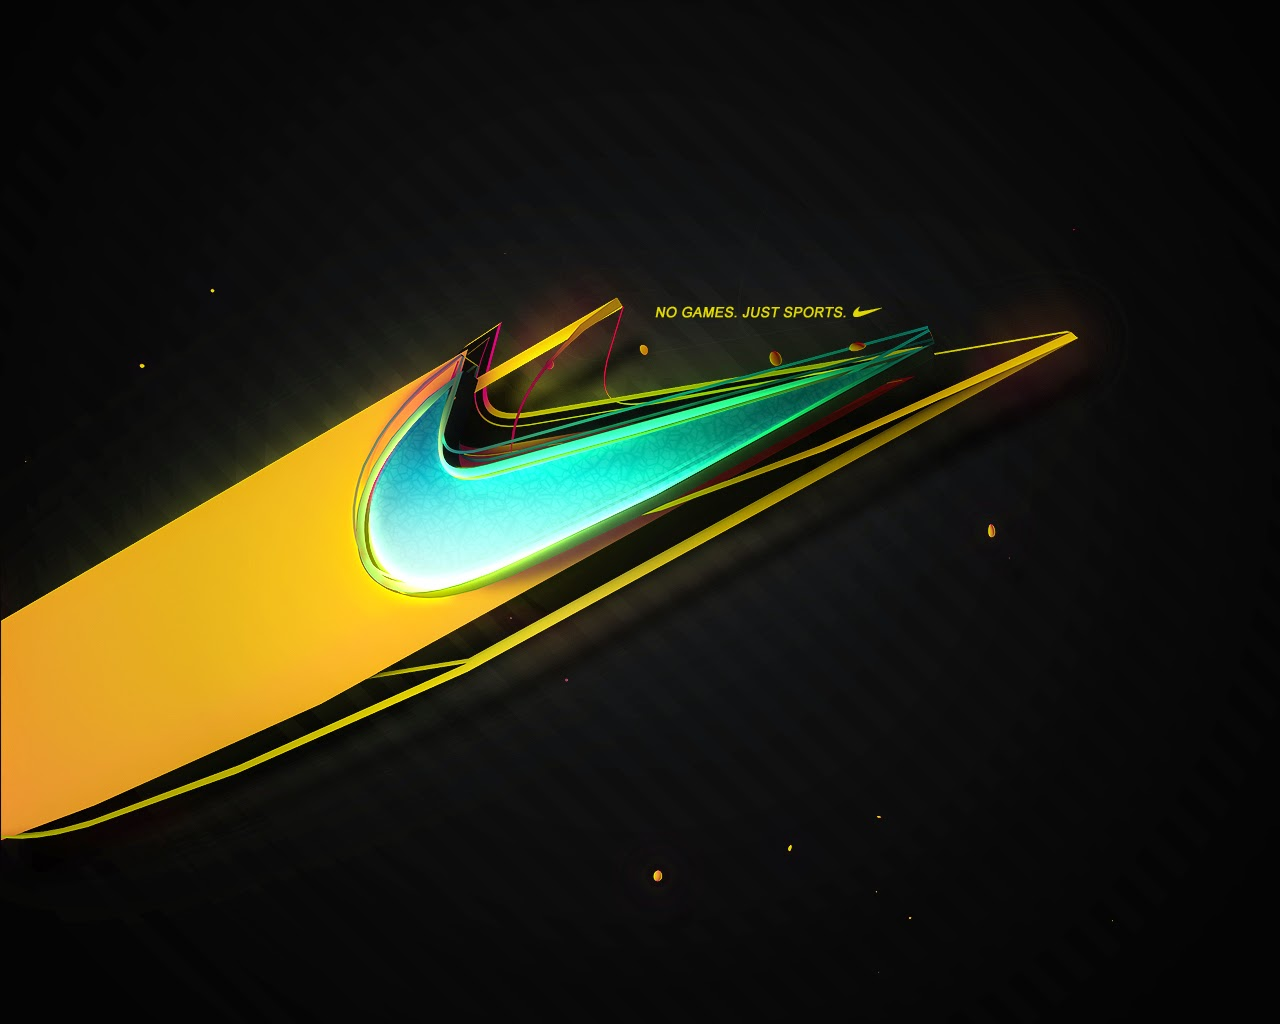 Cool Nike Logos 62 103079 Images HD Wallpapers Wallfoycom